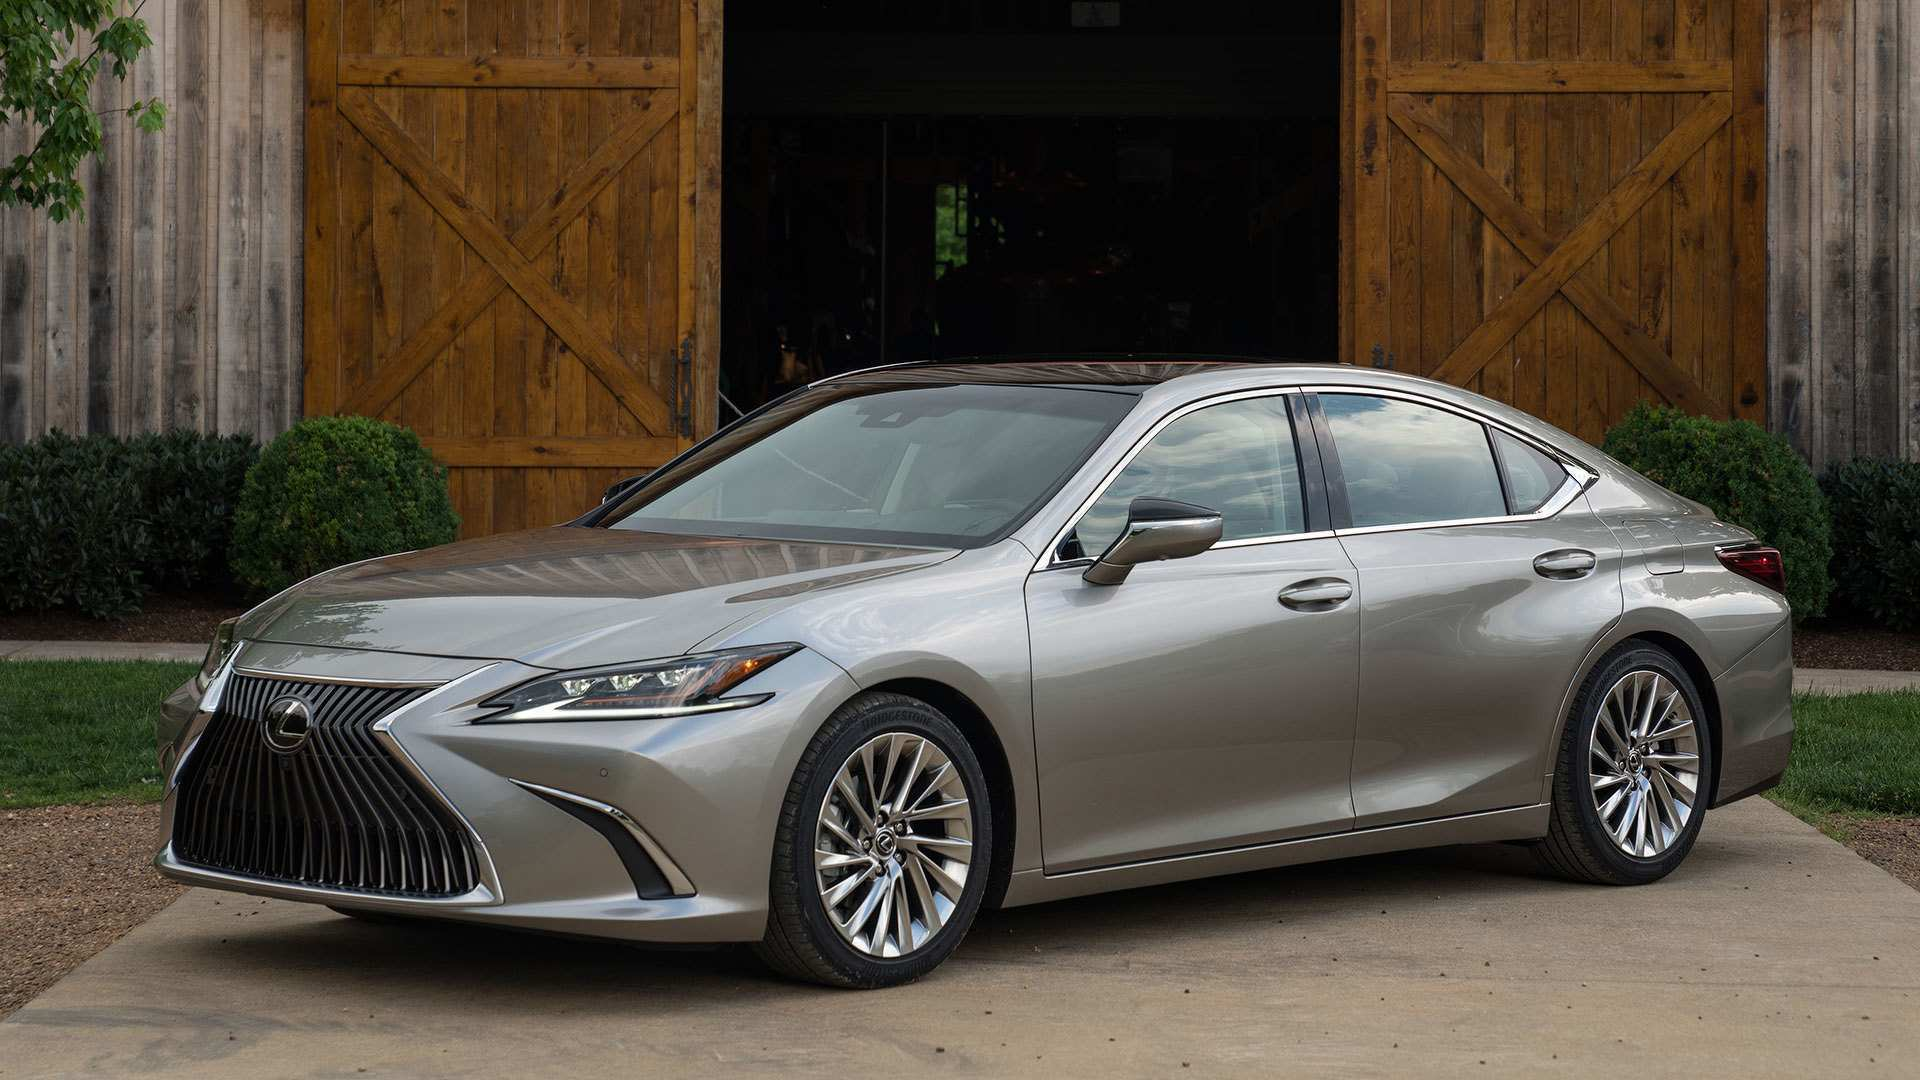 27 New Lexus Es 2019 Debut Reviews for Lexus Es 2019 Debut